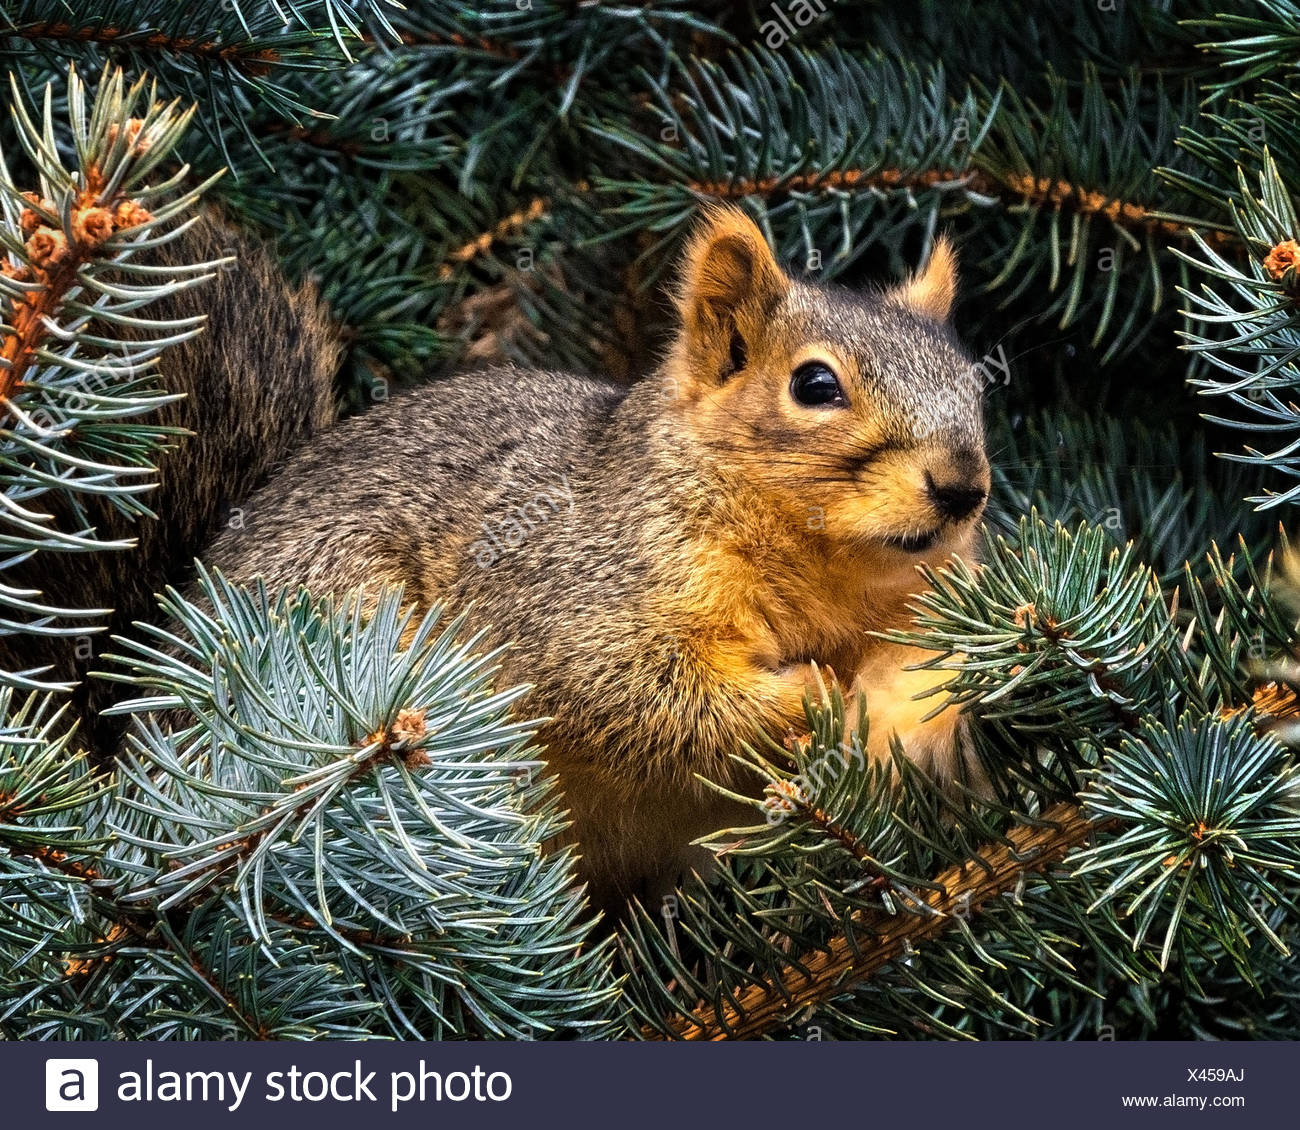 Close-up of squirrel en branches de pins Photo Stock